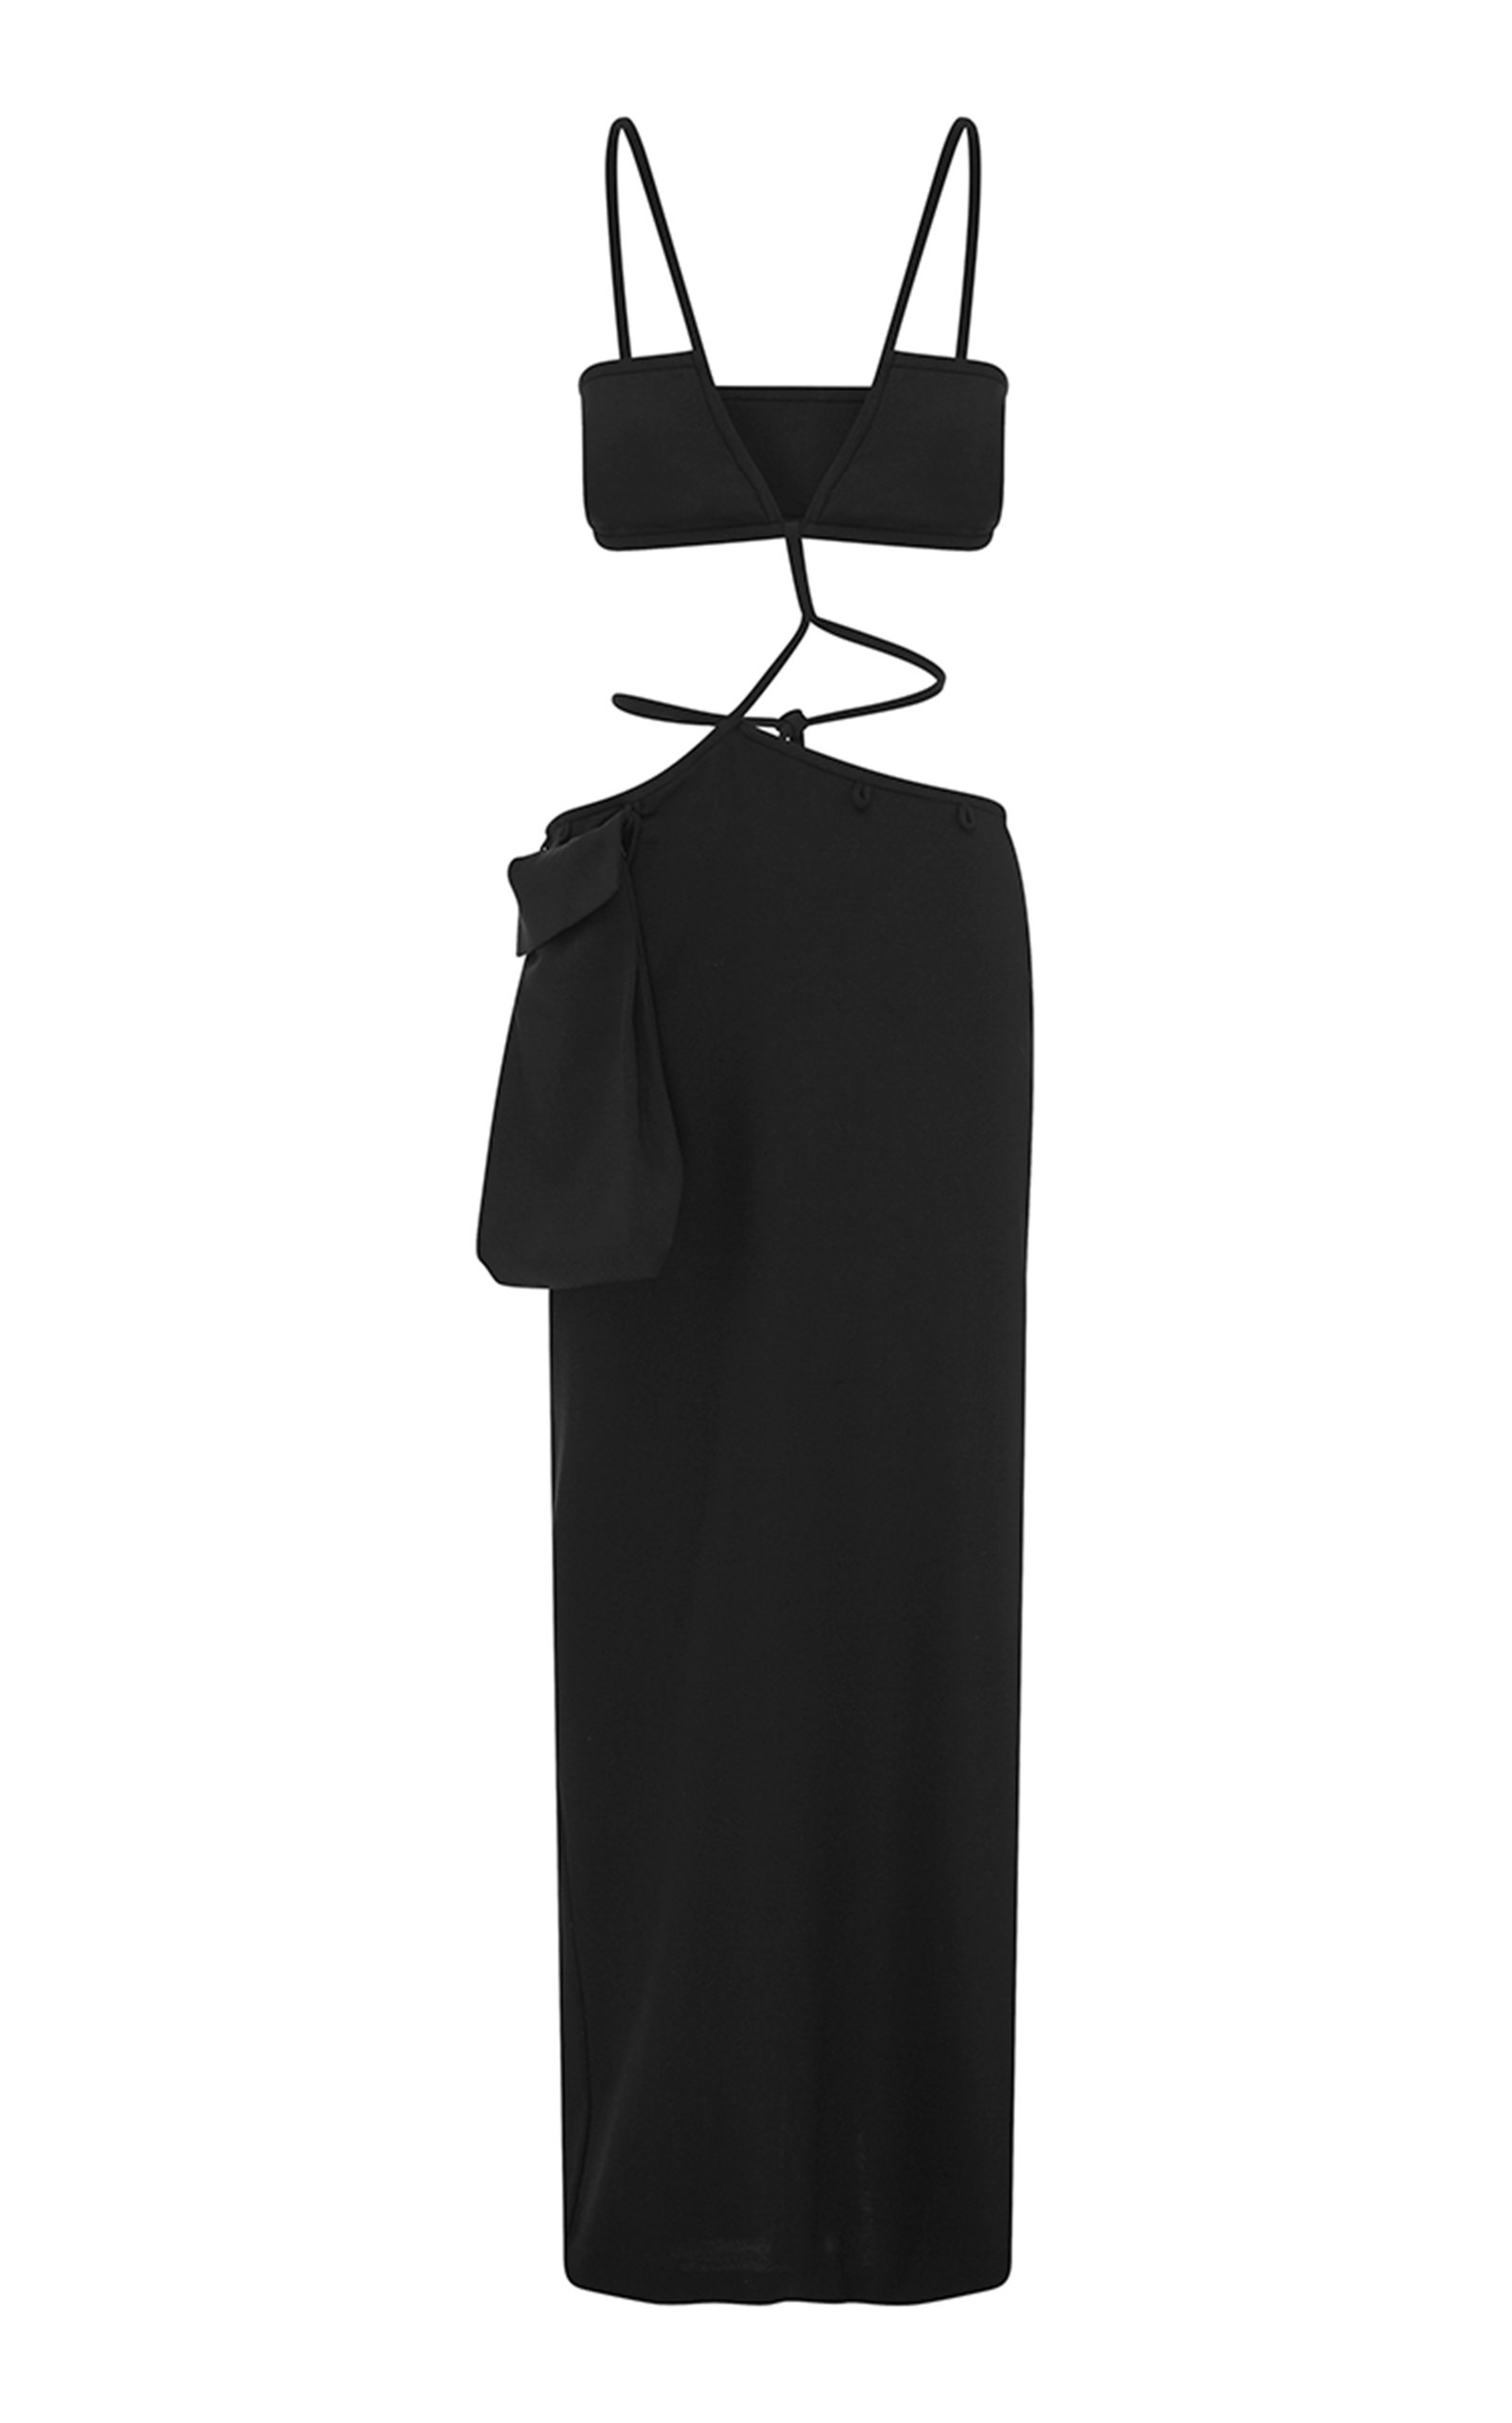 Buy Christopher Esber Tie-Detailed Wool-Blend Crepe Bandeau Dress online, shop Christopher Esber at the best price